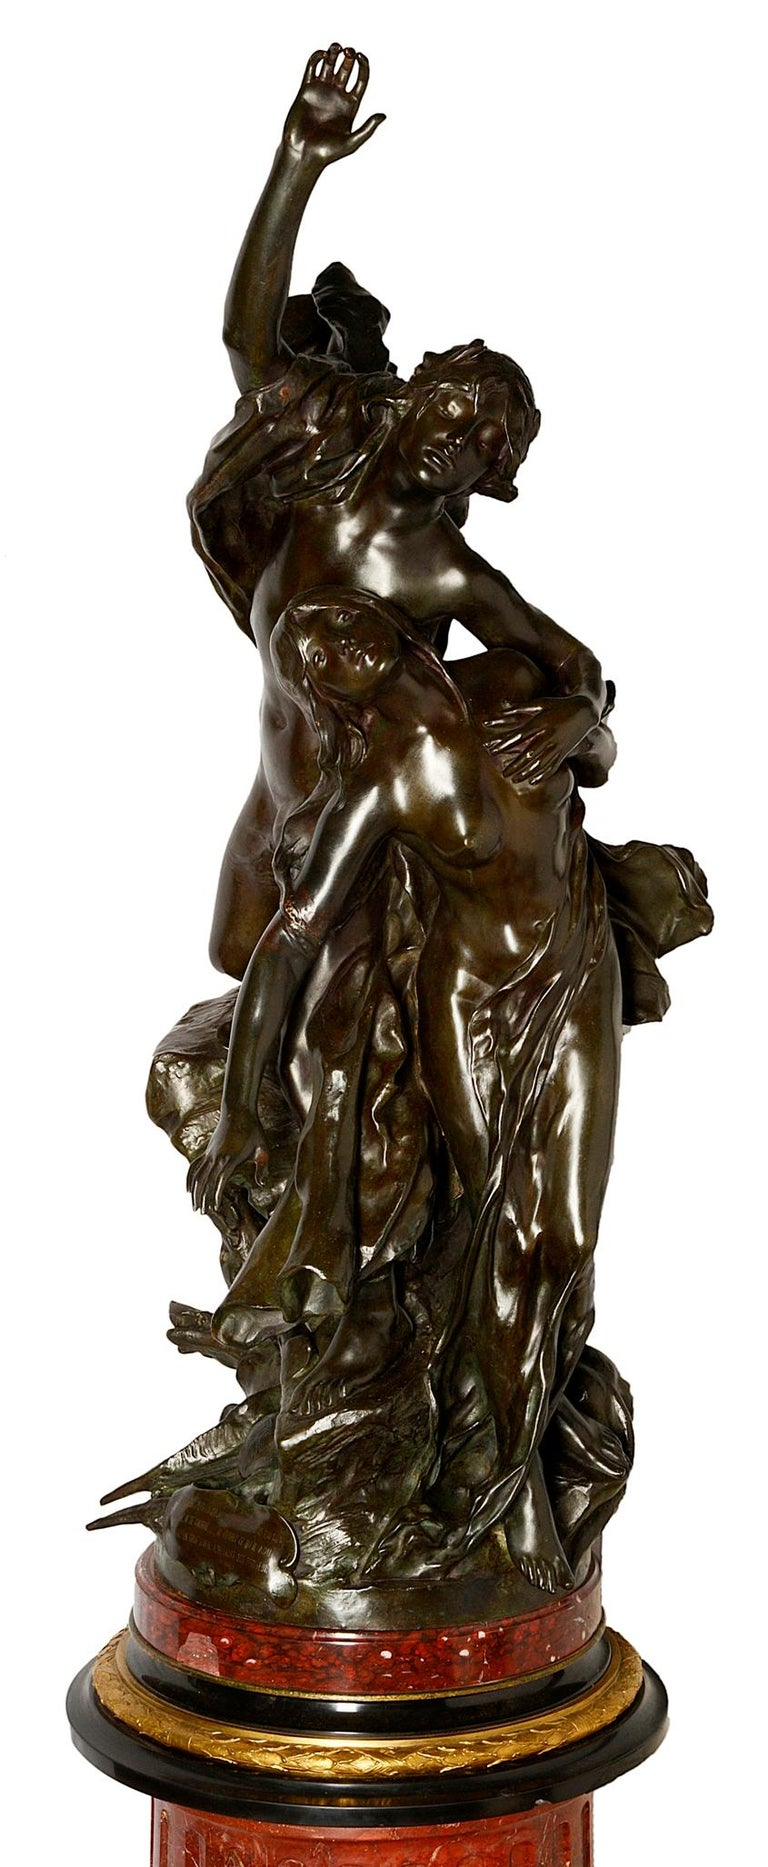 A very impressive classical 19th century bronze statue of god like semi-nude figures reaching for the sky, with a hound at their feet.